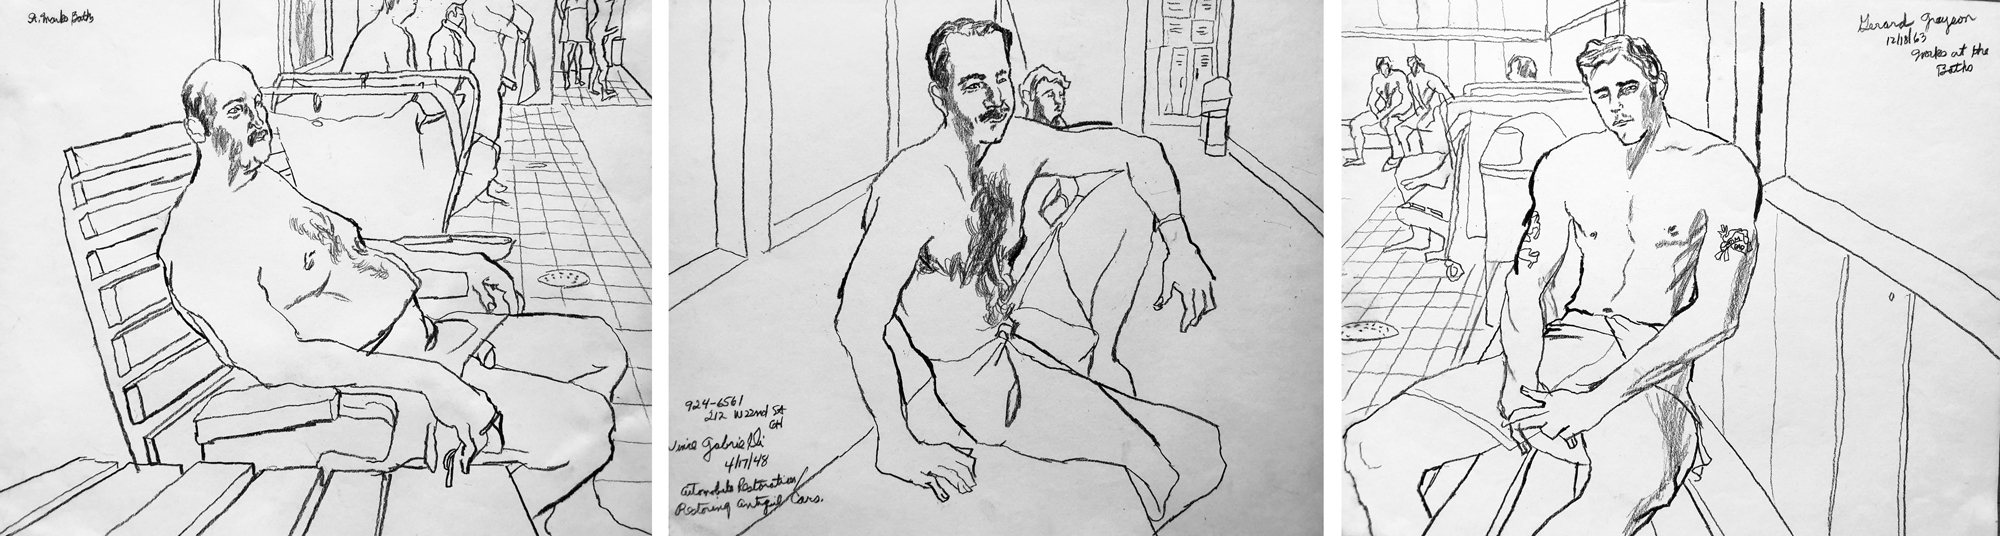 Patrons at the New St. Marks Baths, 1984. Illustrations by <a href=https://www.instagram.com/jrugger1949/>John Ruggeri</a>. Predicting that the New St. Marks Baths was on the verge of closure, Ruggeri regularly made on-site drawings of the varied patrons, whom he would also engage in conversation about their lives, the health crisis, and safe sex. Sometimes he labeled his works with the sitter's name, profession, birthdate, phone number, and street address. He drew most subjects in the main room, close to the whirlpool and showers. Conveying a strong sense of community, belonging, and trepidation, Ruggeri's tender portrayals constitute a remarkable archive of the eleventh hour of the New St. Marks Baths.